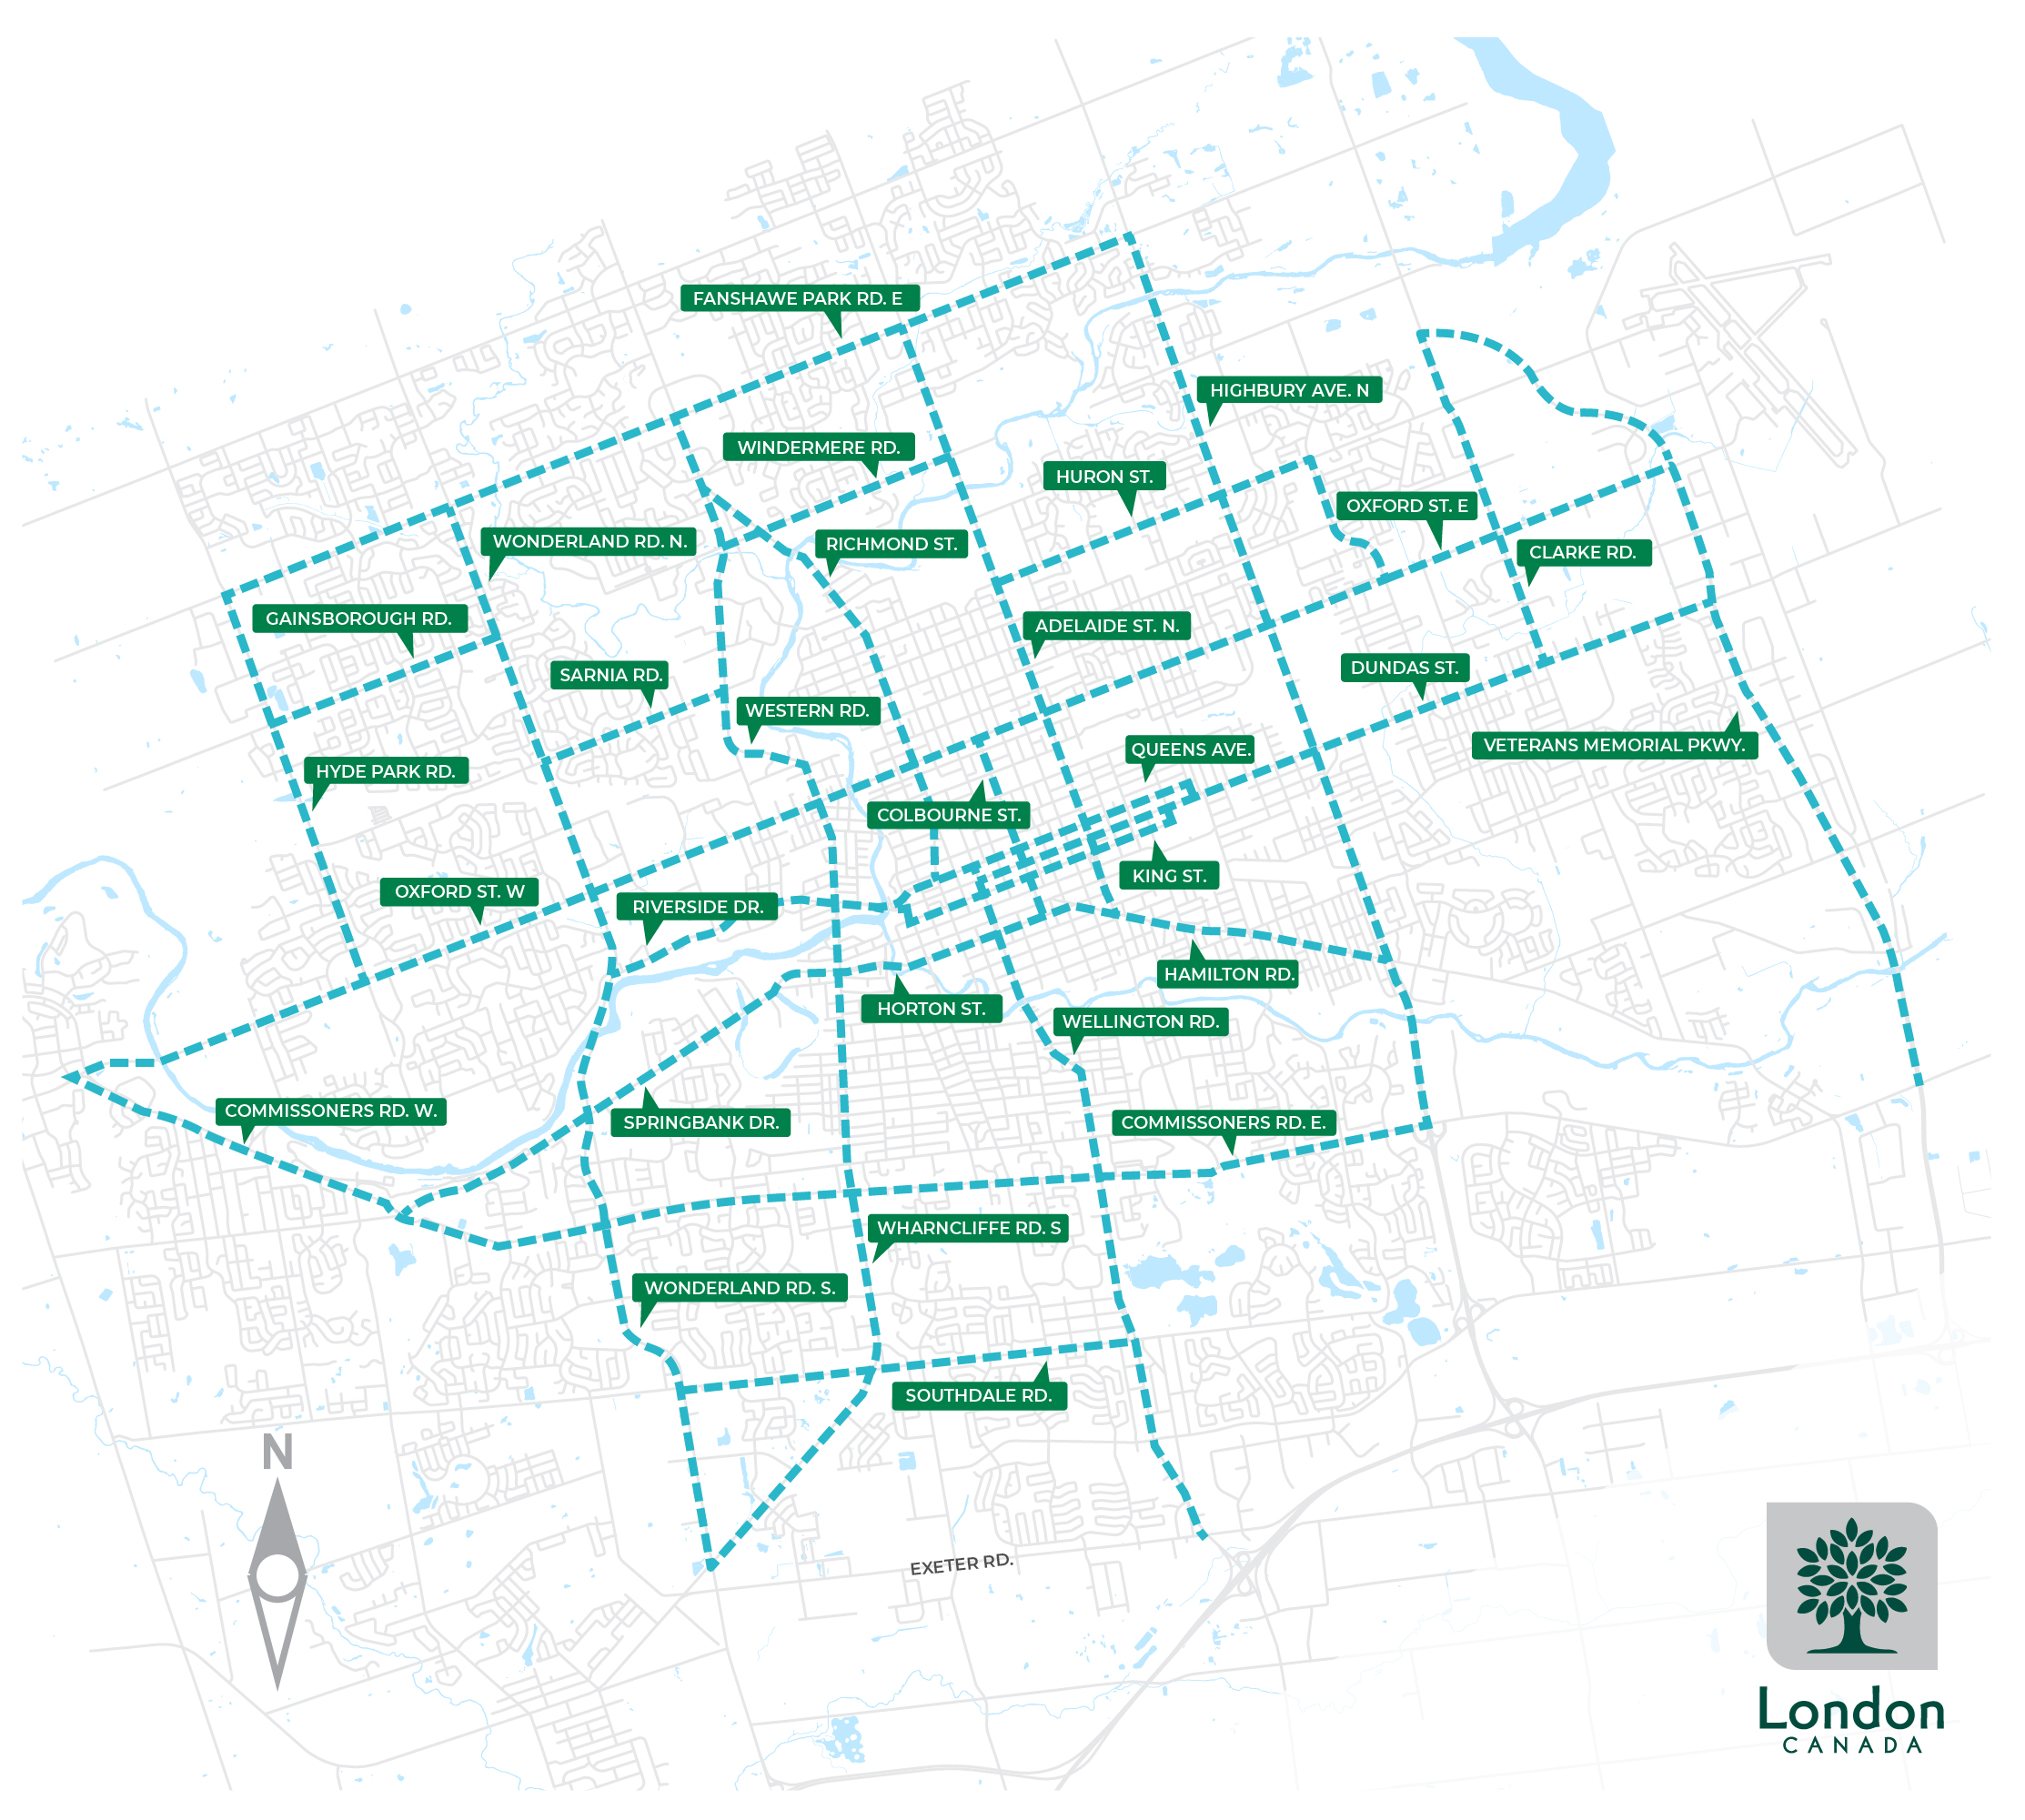 A map of intelligent traffic signal corridors in London. For more information, please contact the Traffic management centre at tmc@london.ca